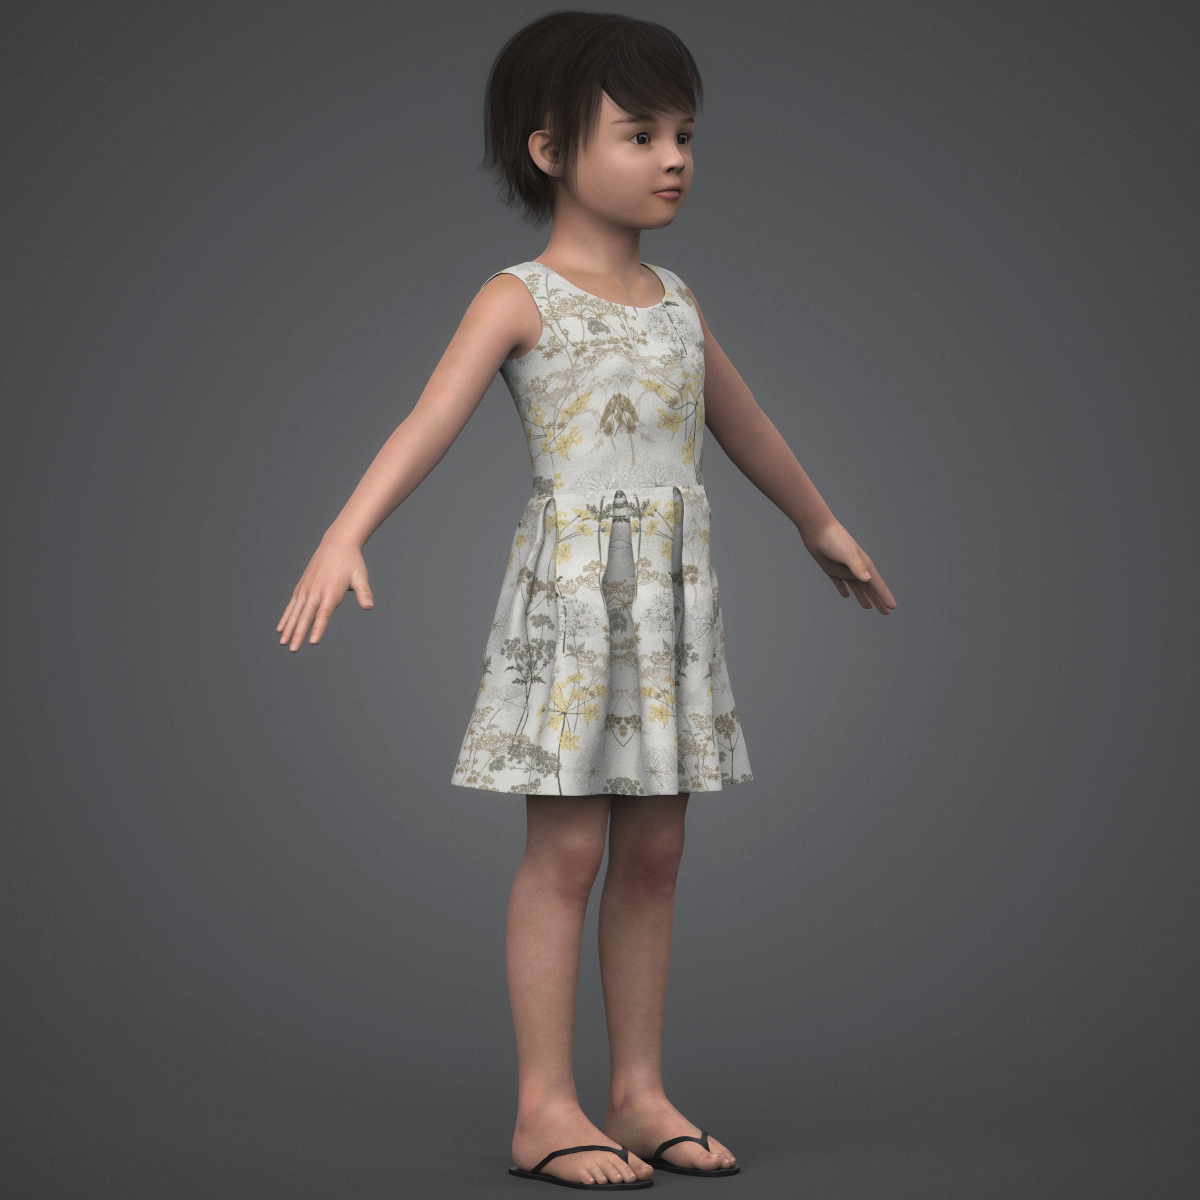 beautiful child girl 3d model max fbx c4d ma mb texture obj 252400